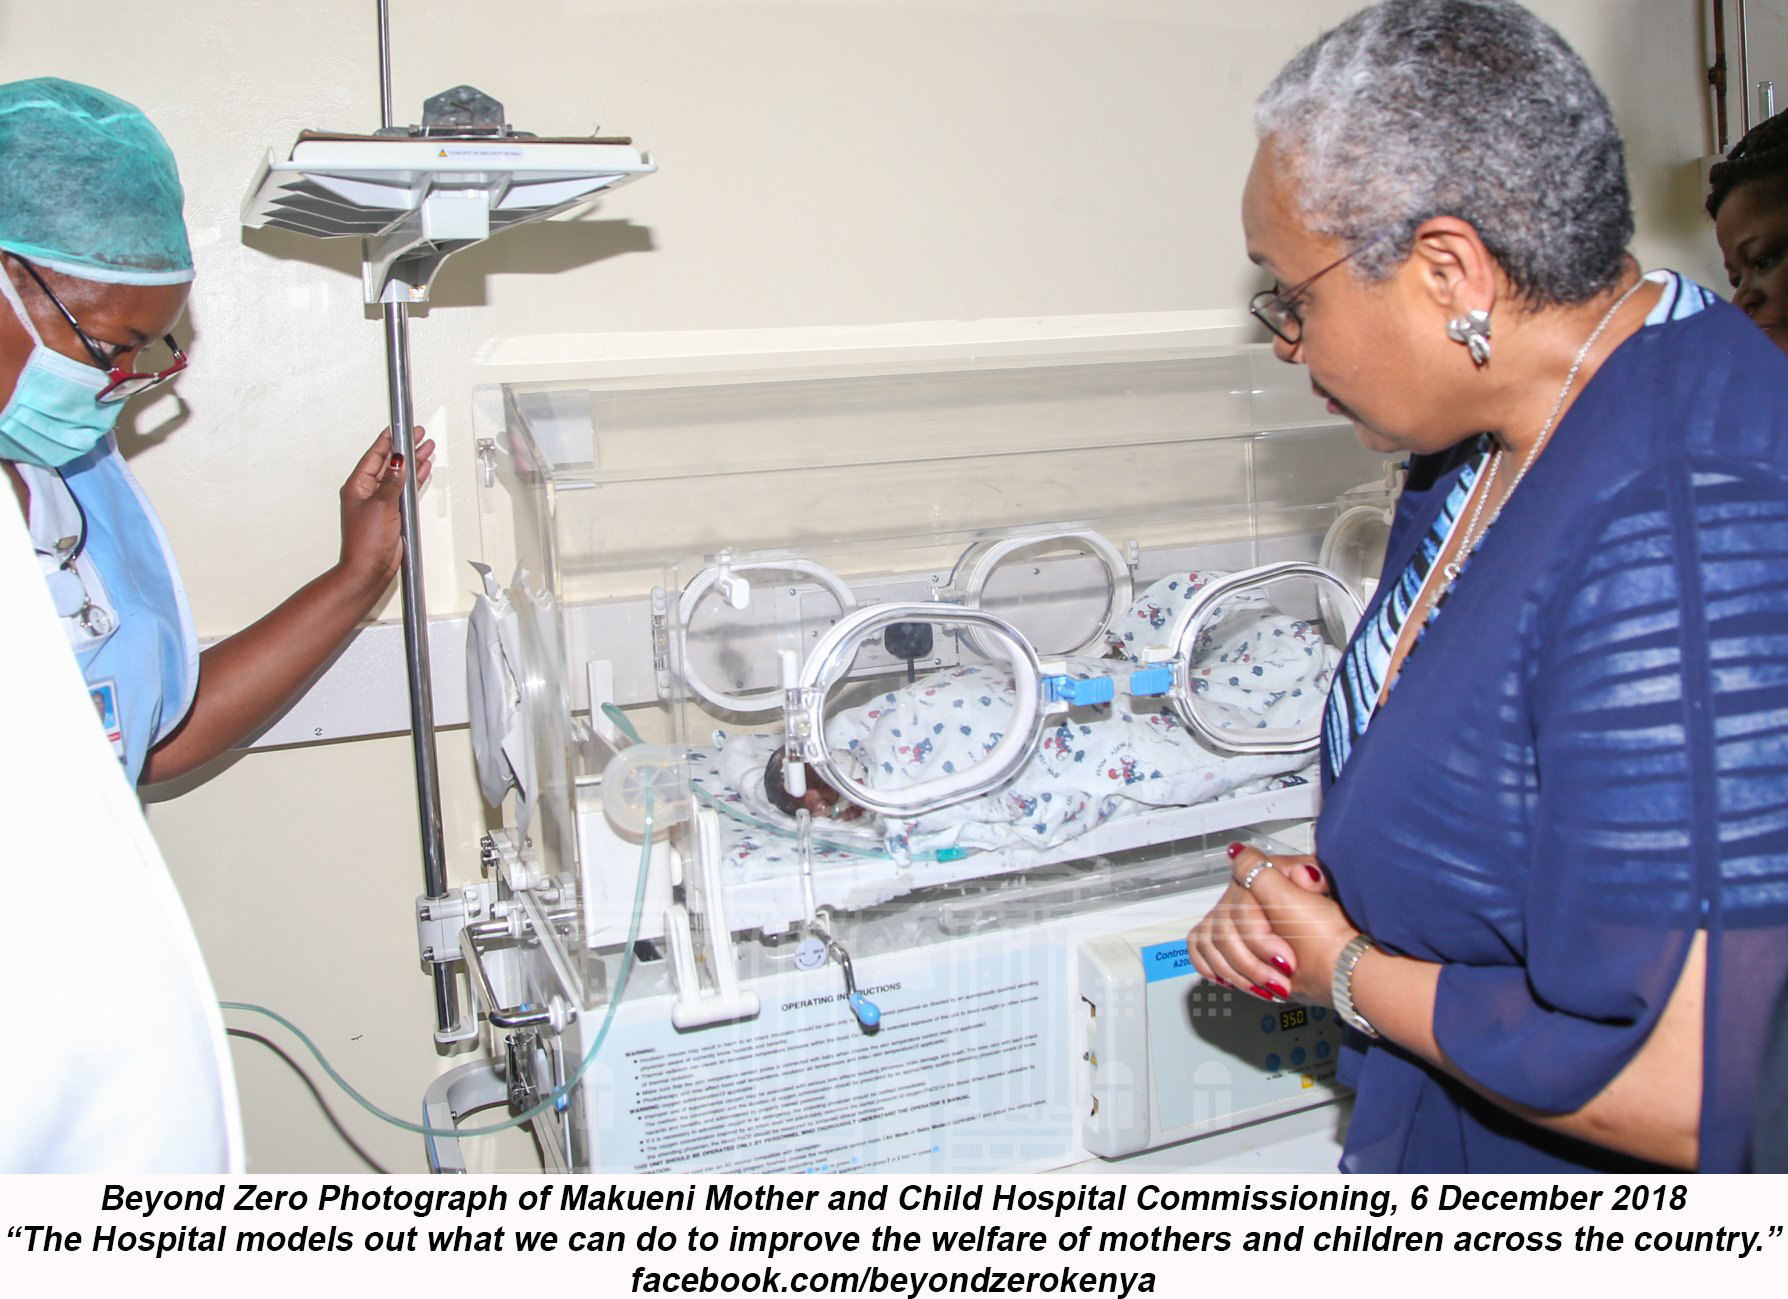 First Lady of Kenya Mobilizes Resources to Lower Maternal Mortality Rates